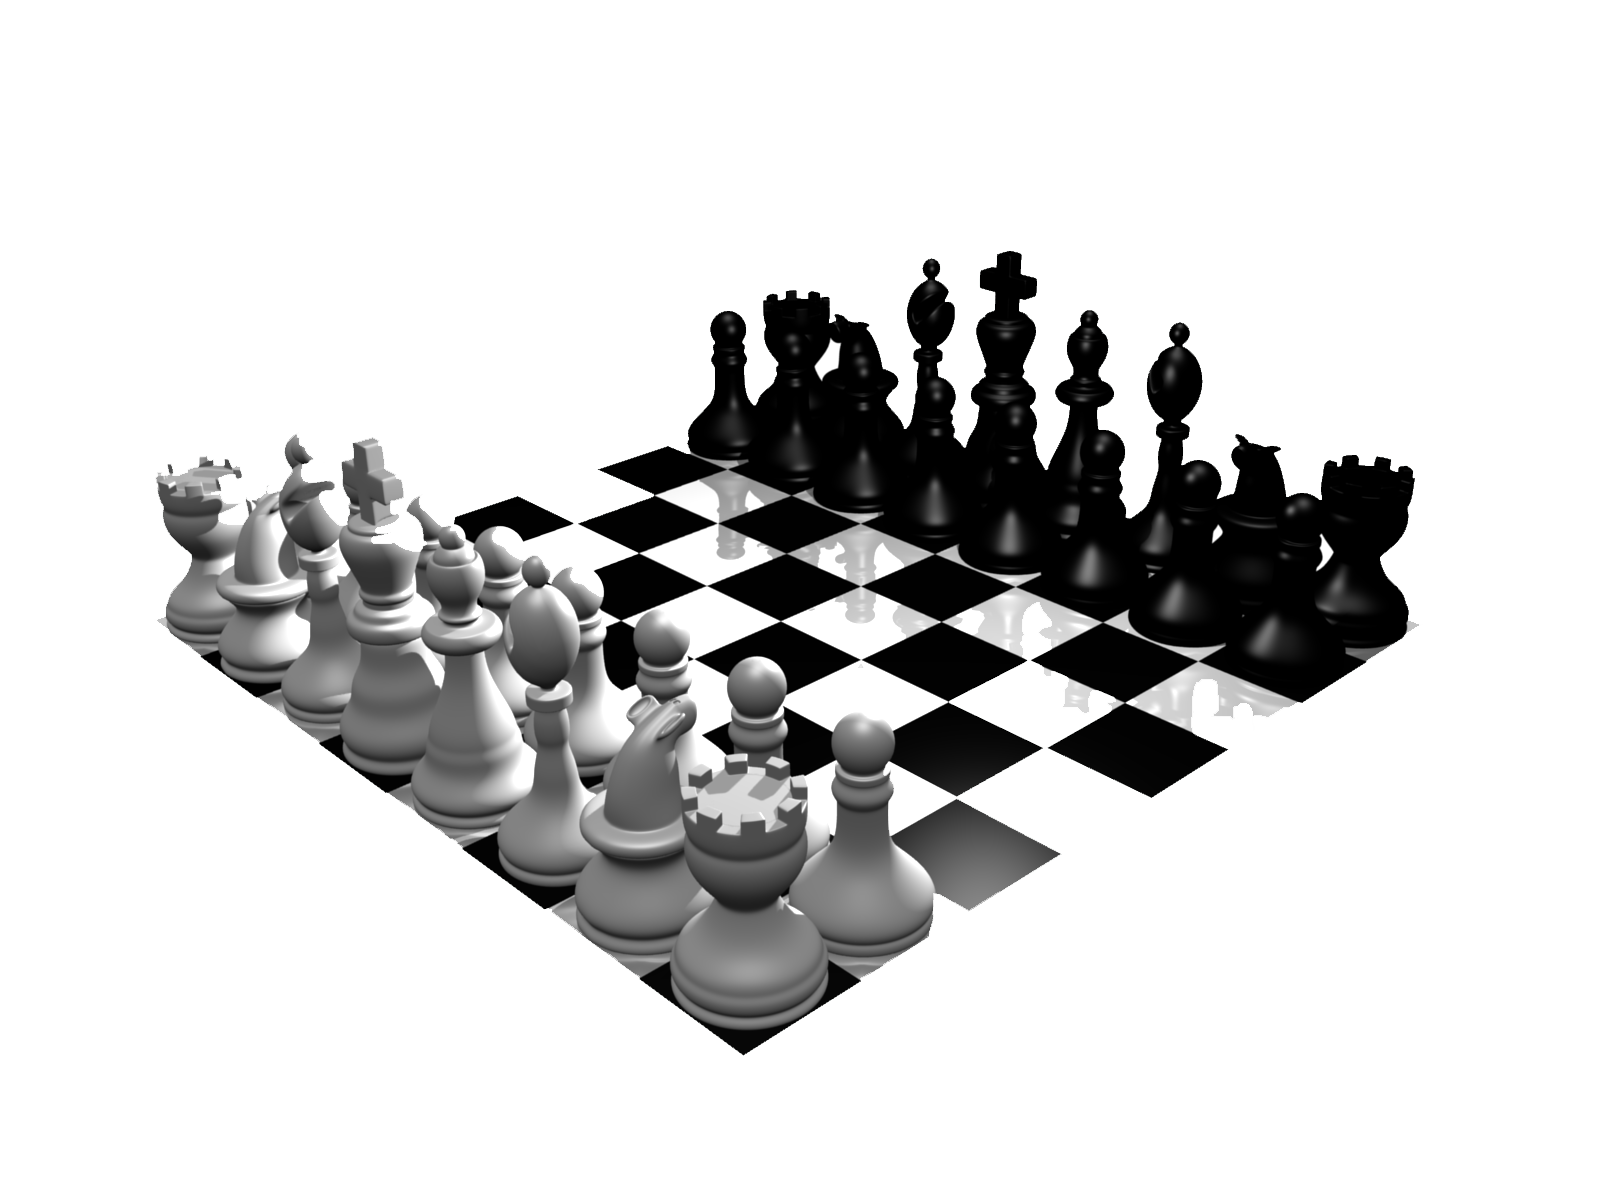 png transparent stock  collection of games. Chess clipart indoor game